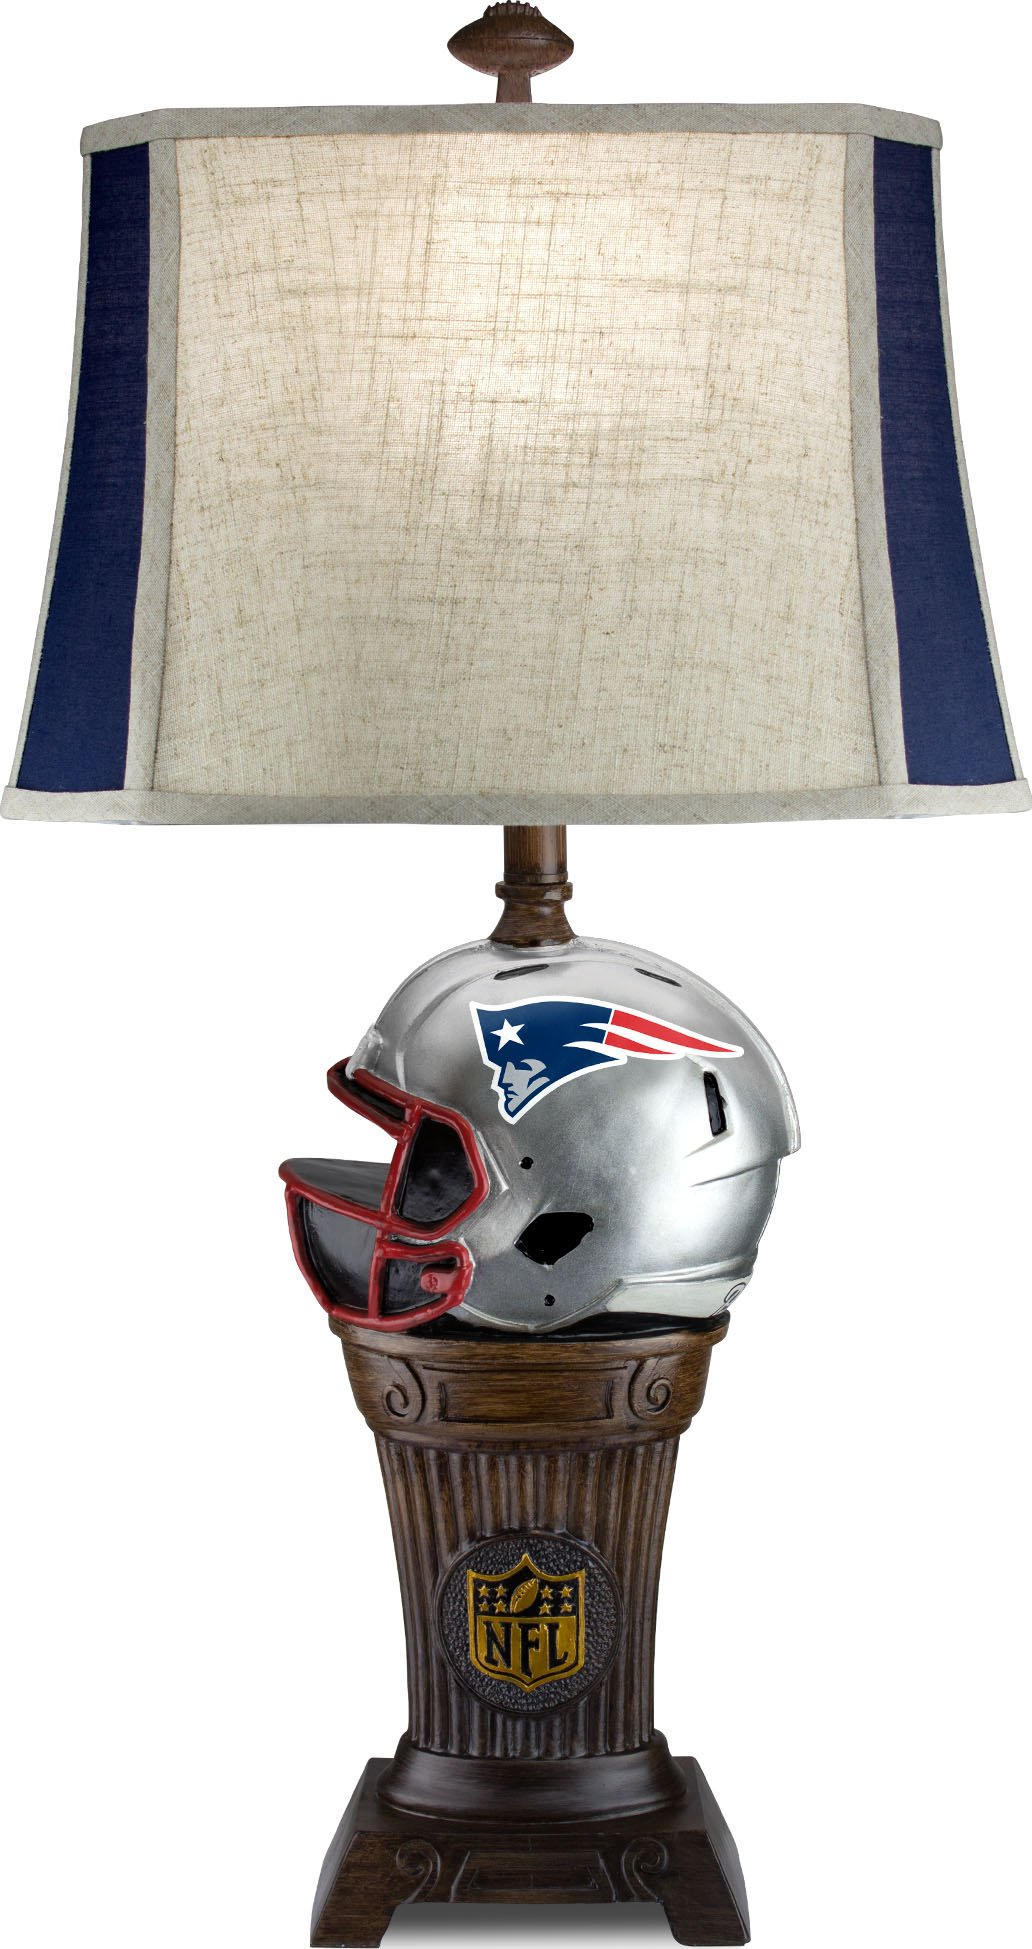 Imperial Officially Licensed NFL Merchandise: Trophy Lamp, New England Patriots